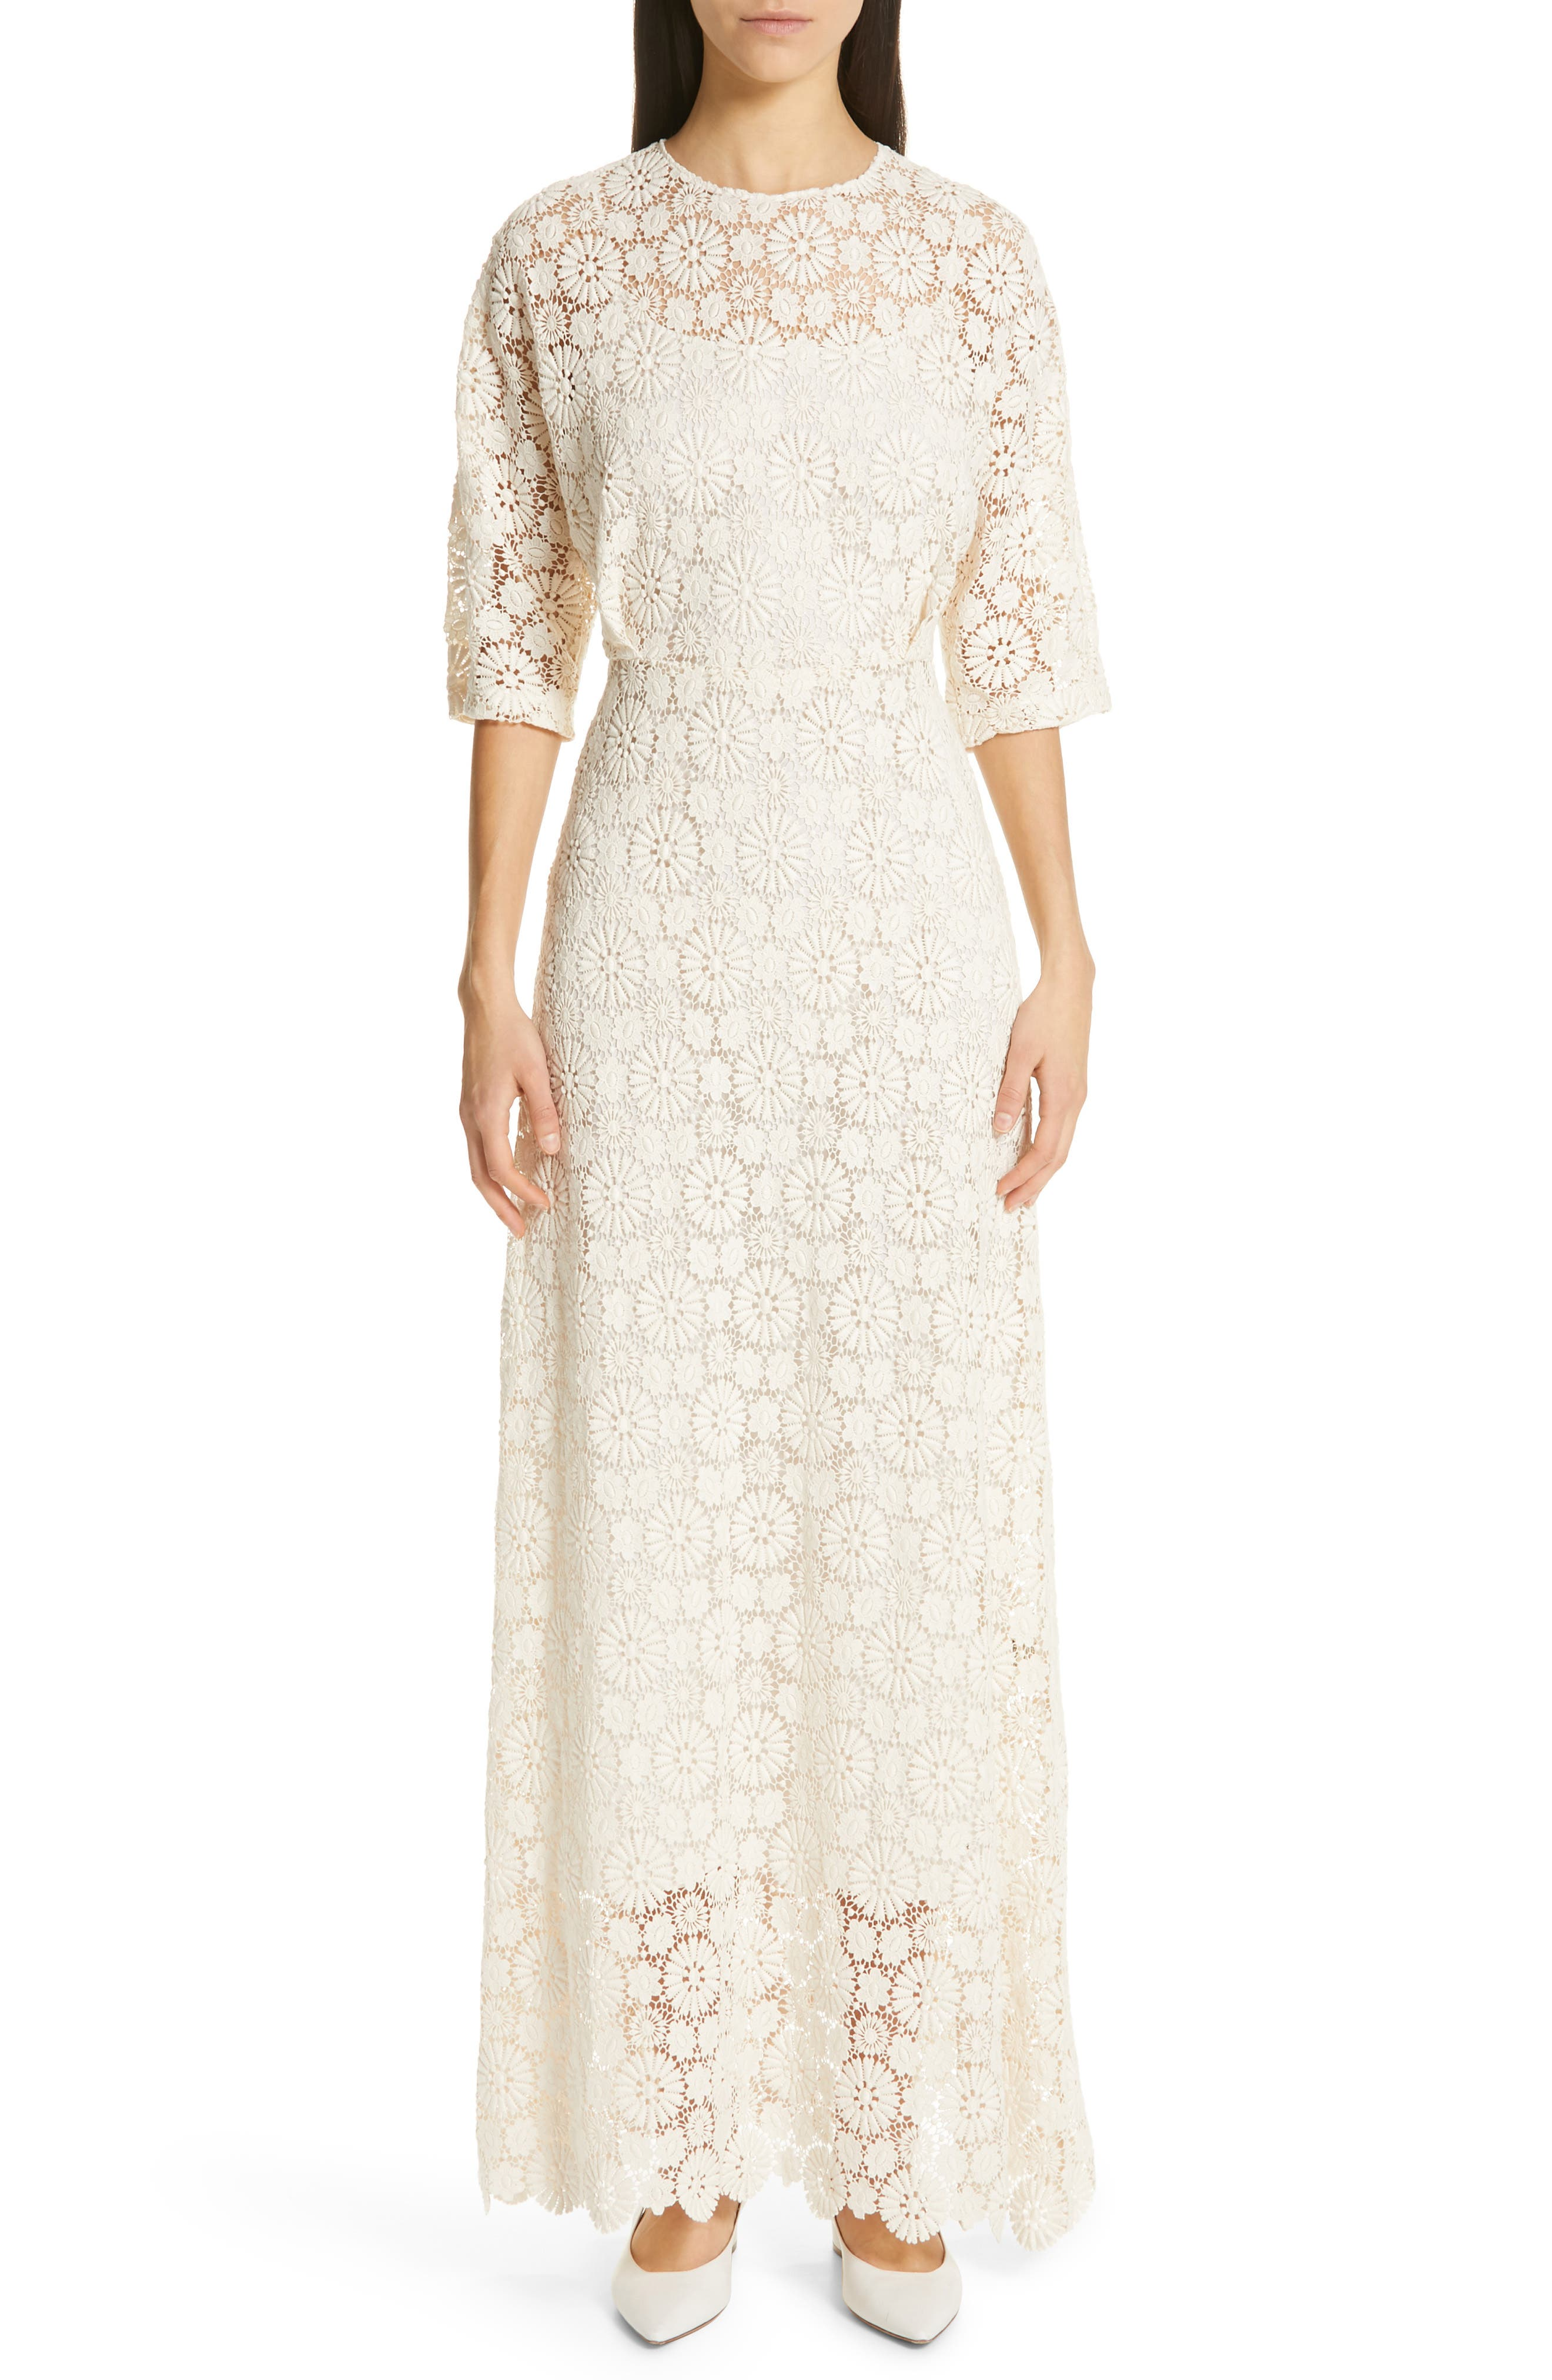 Vintage Inspired Wedding Dress | Vintage Style Wedding Dresses Womens Mansur Gavriel Guipure Lace Long Sheath Dress $1,250.00 AT vintagedancer.com